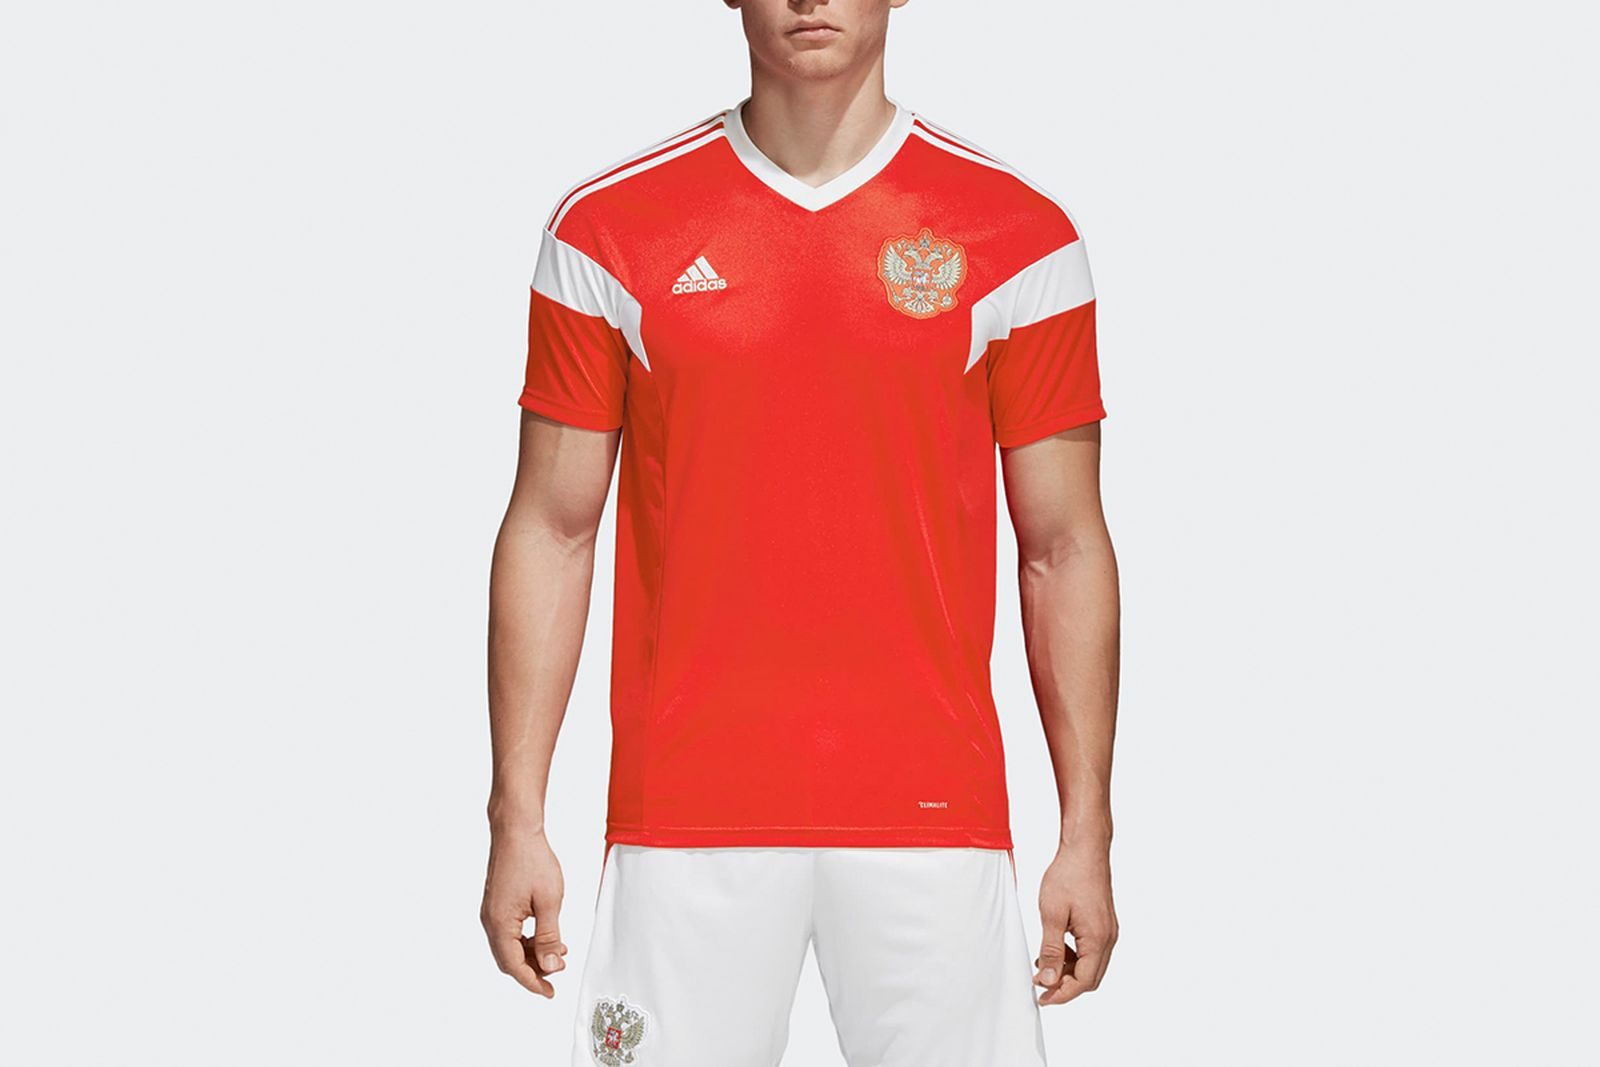 Russia Home Jersey Red BR9055 21 model 2018 FIFA World Cup Adidas